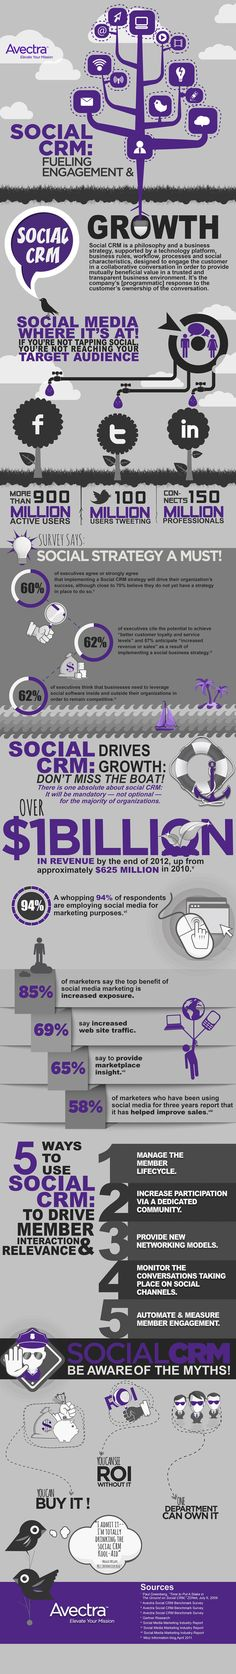 Social CRM Fuels Engagement and Growth. http://www.serverpoint.com/ #socialmedia